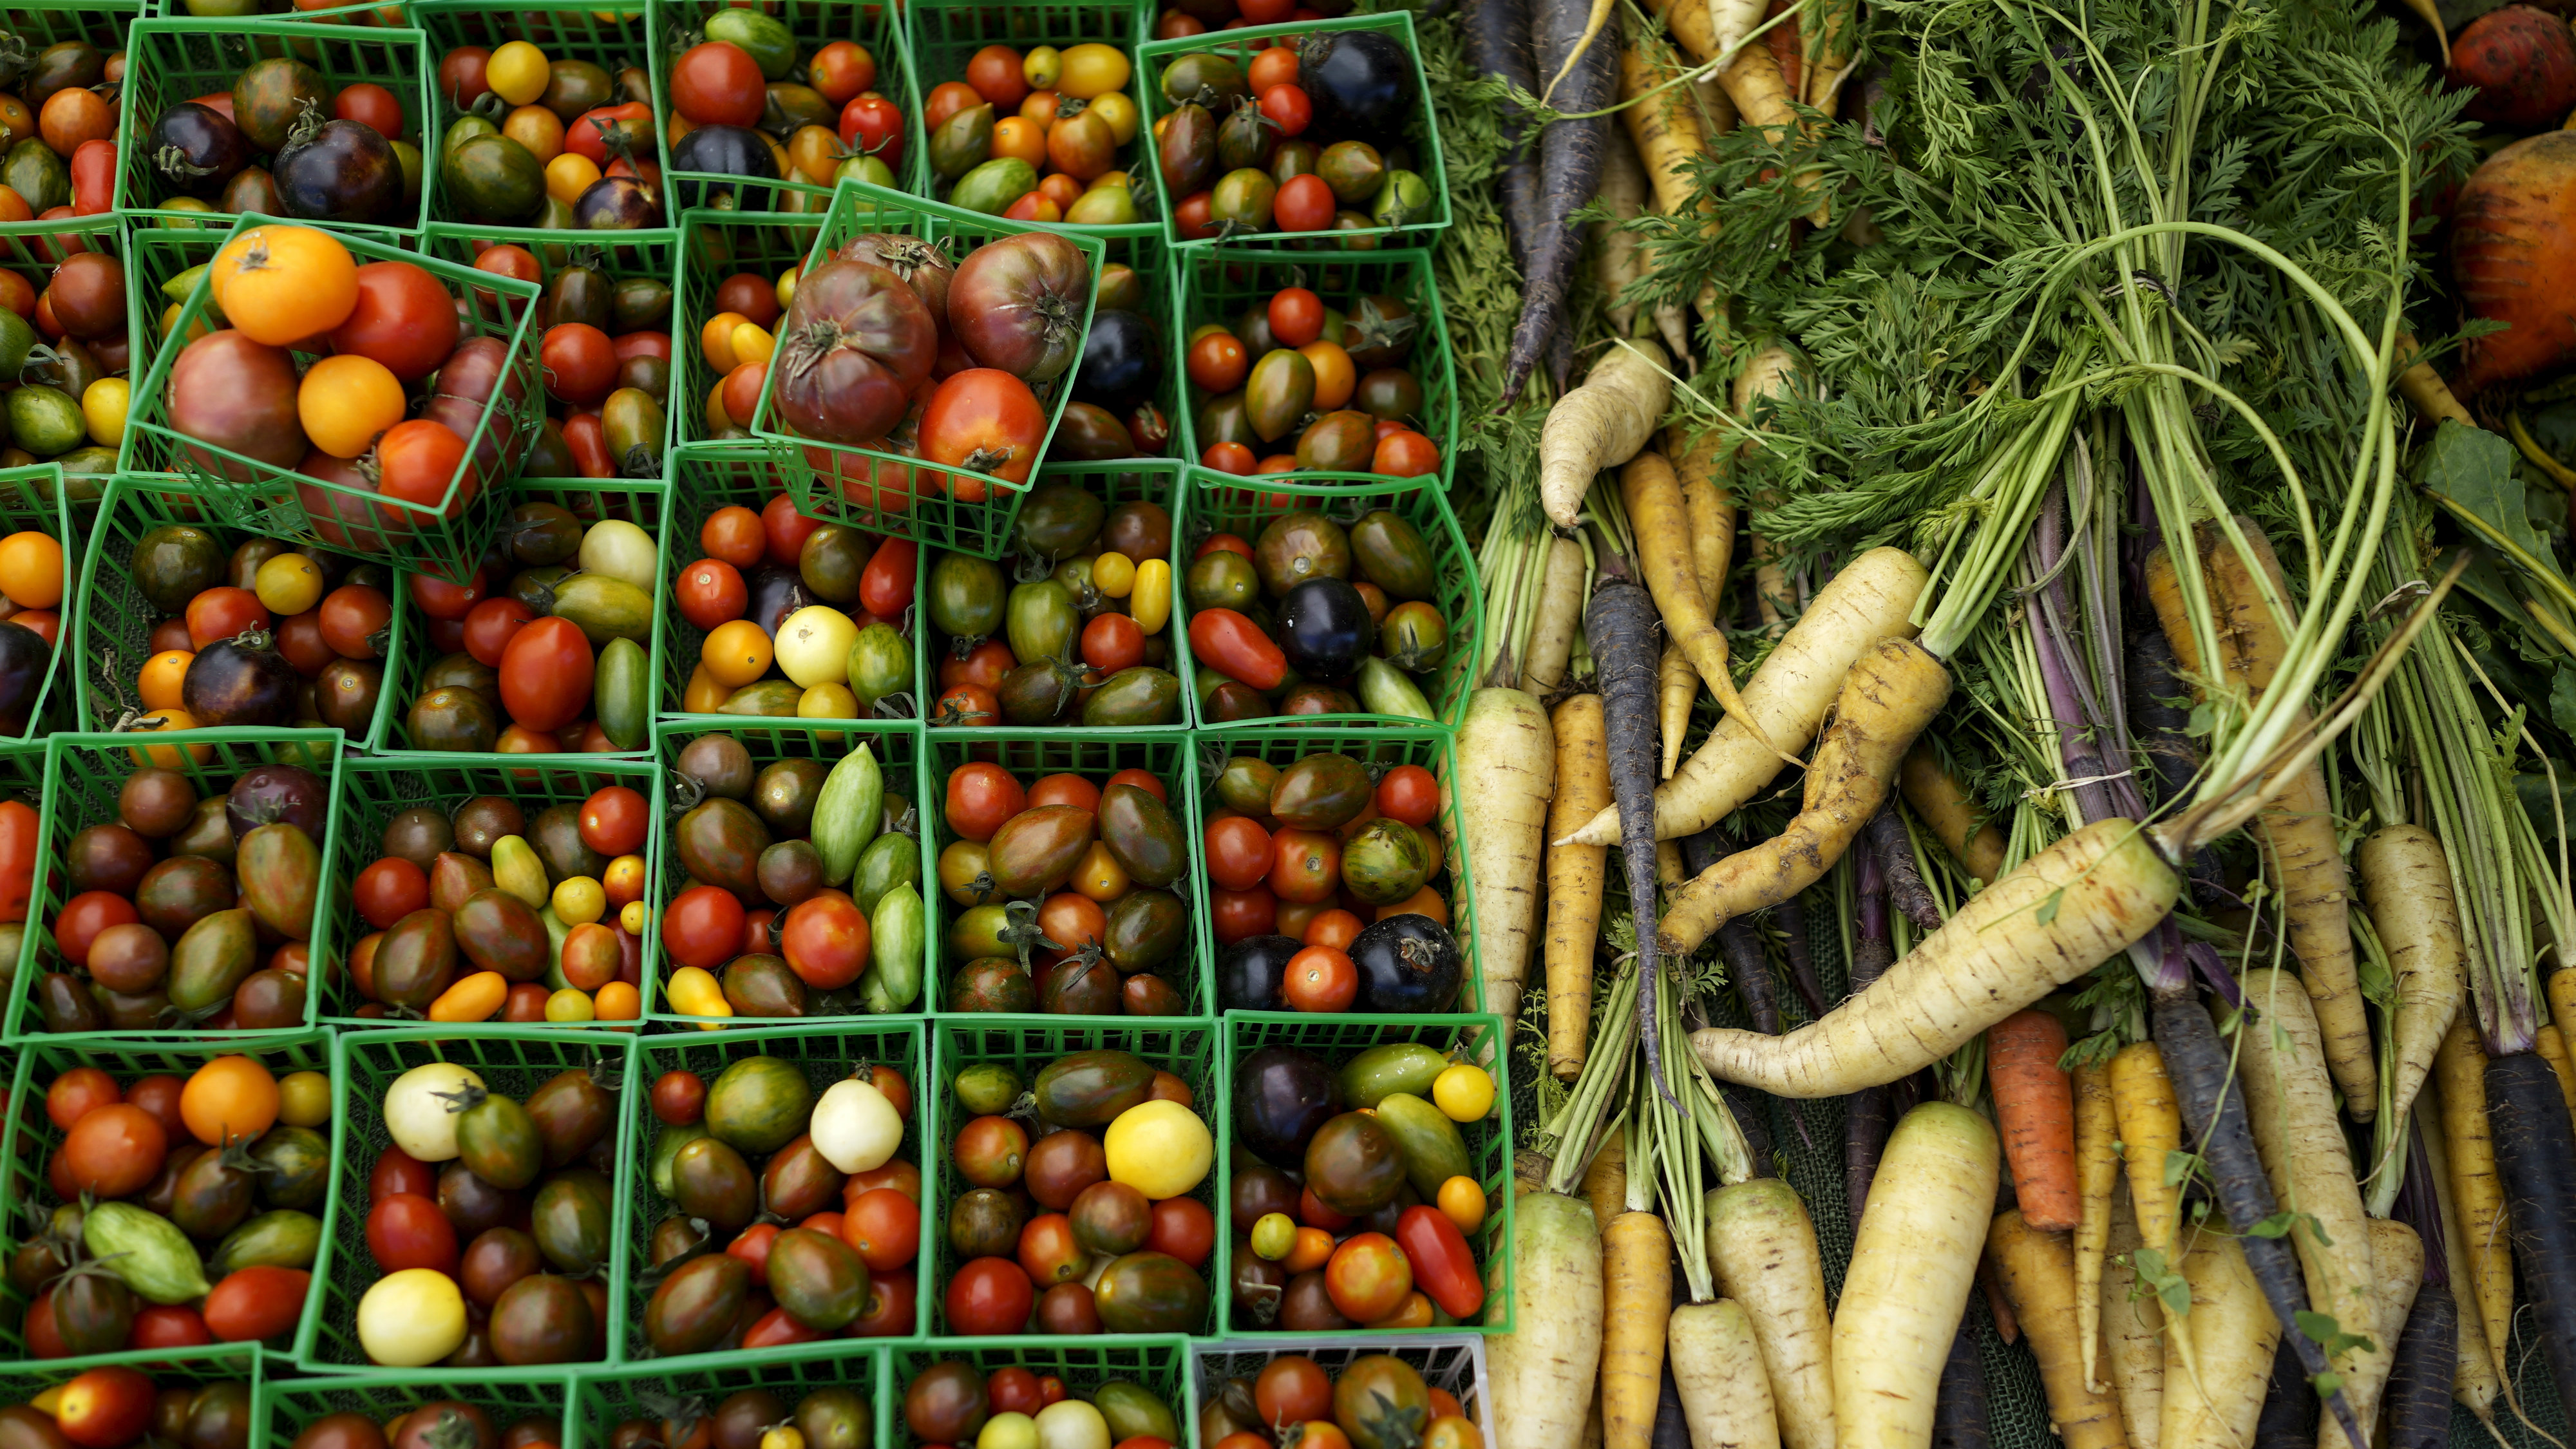 Vegetables are seen at a farmers market in Los Angeles, California, United States May 10, 2015. Many crops have ripened early because of the drought. California water regulators last week adopted the state's first rules for mandatory cutbacks in urban water use as the region's catastrophic drought enters its fourth year. Urban users will be hardest hit, even though they account for only 20 percent of state water consumption, while the state's massive agricultural sector, which the Public Policy Institute of California says uses 80 percent of human-related consumption, has been exempted. Picture taken May 10, 2015. REUTERS/Lucy Nicholson